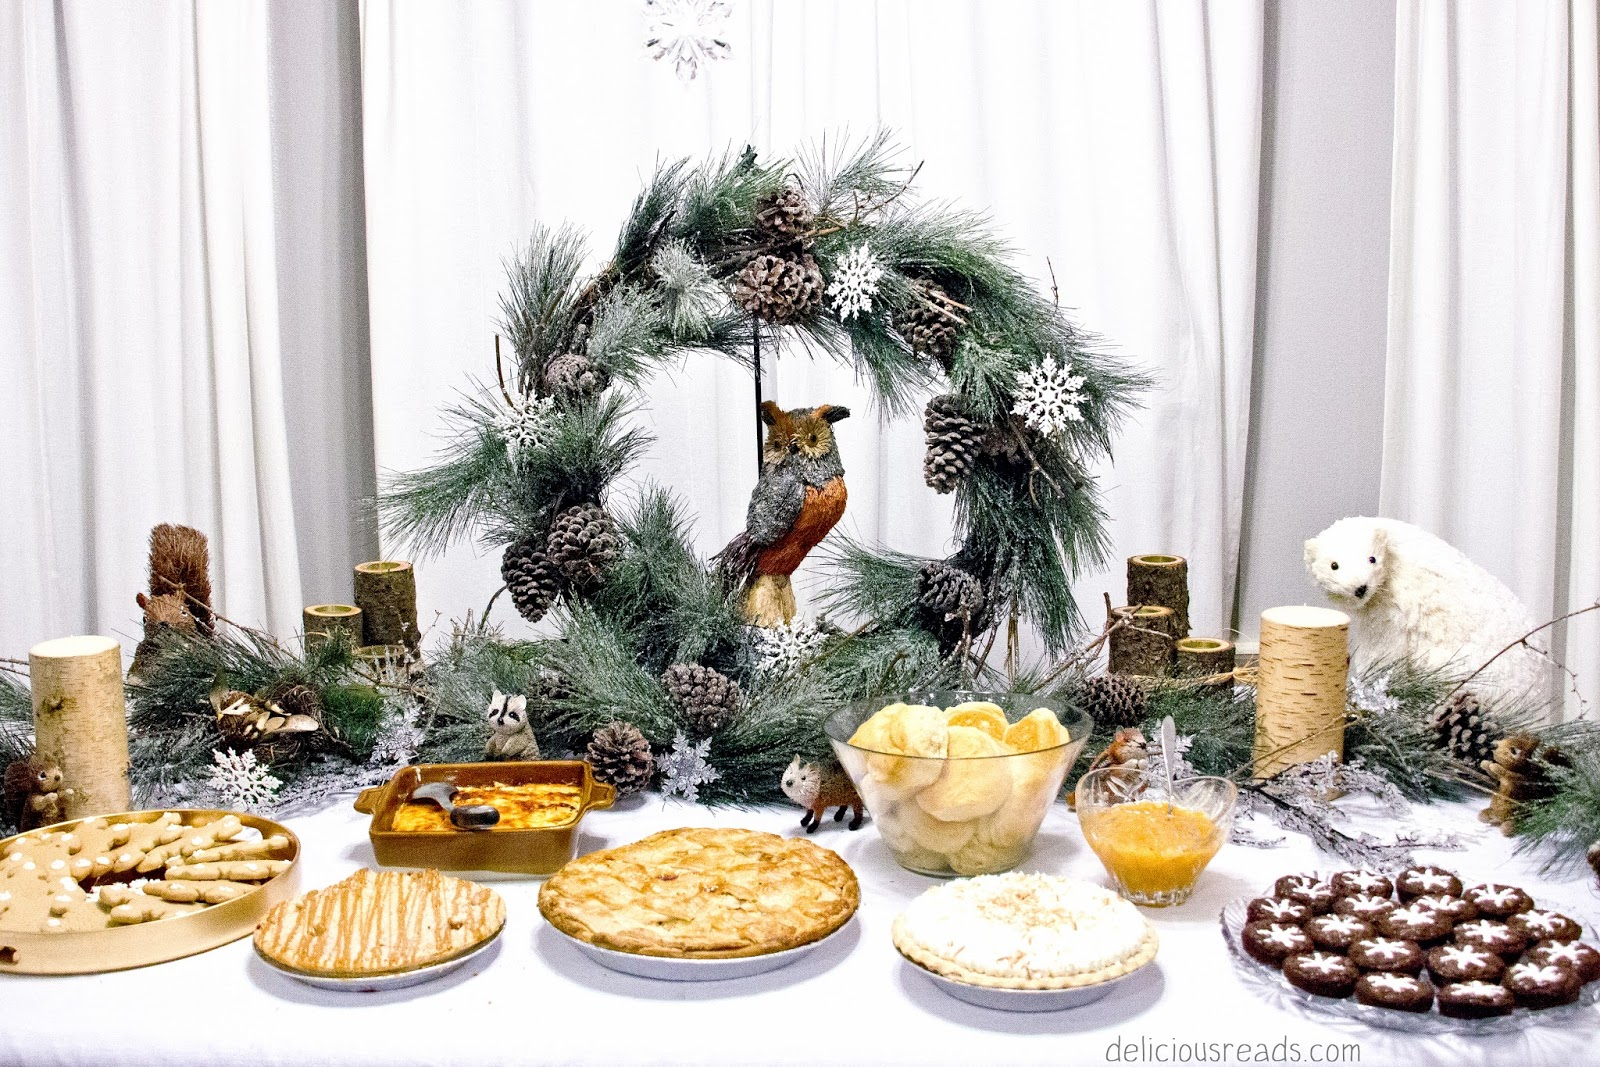 Food and table decorations for the Snow child